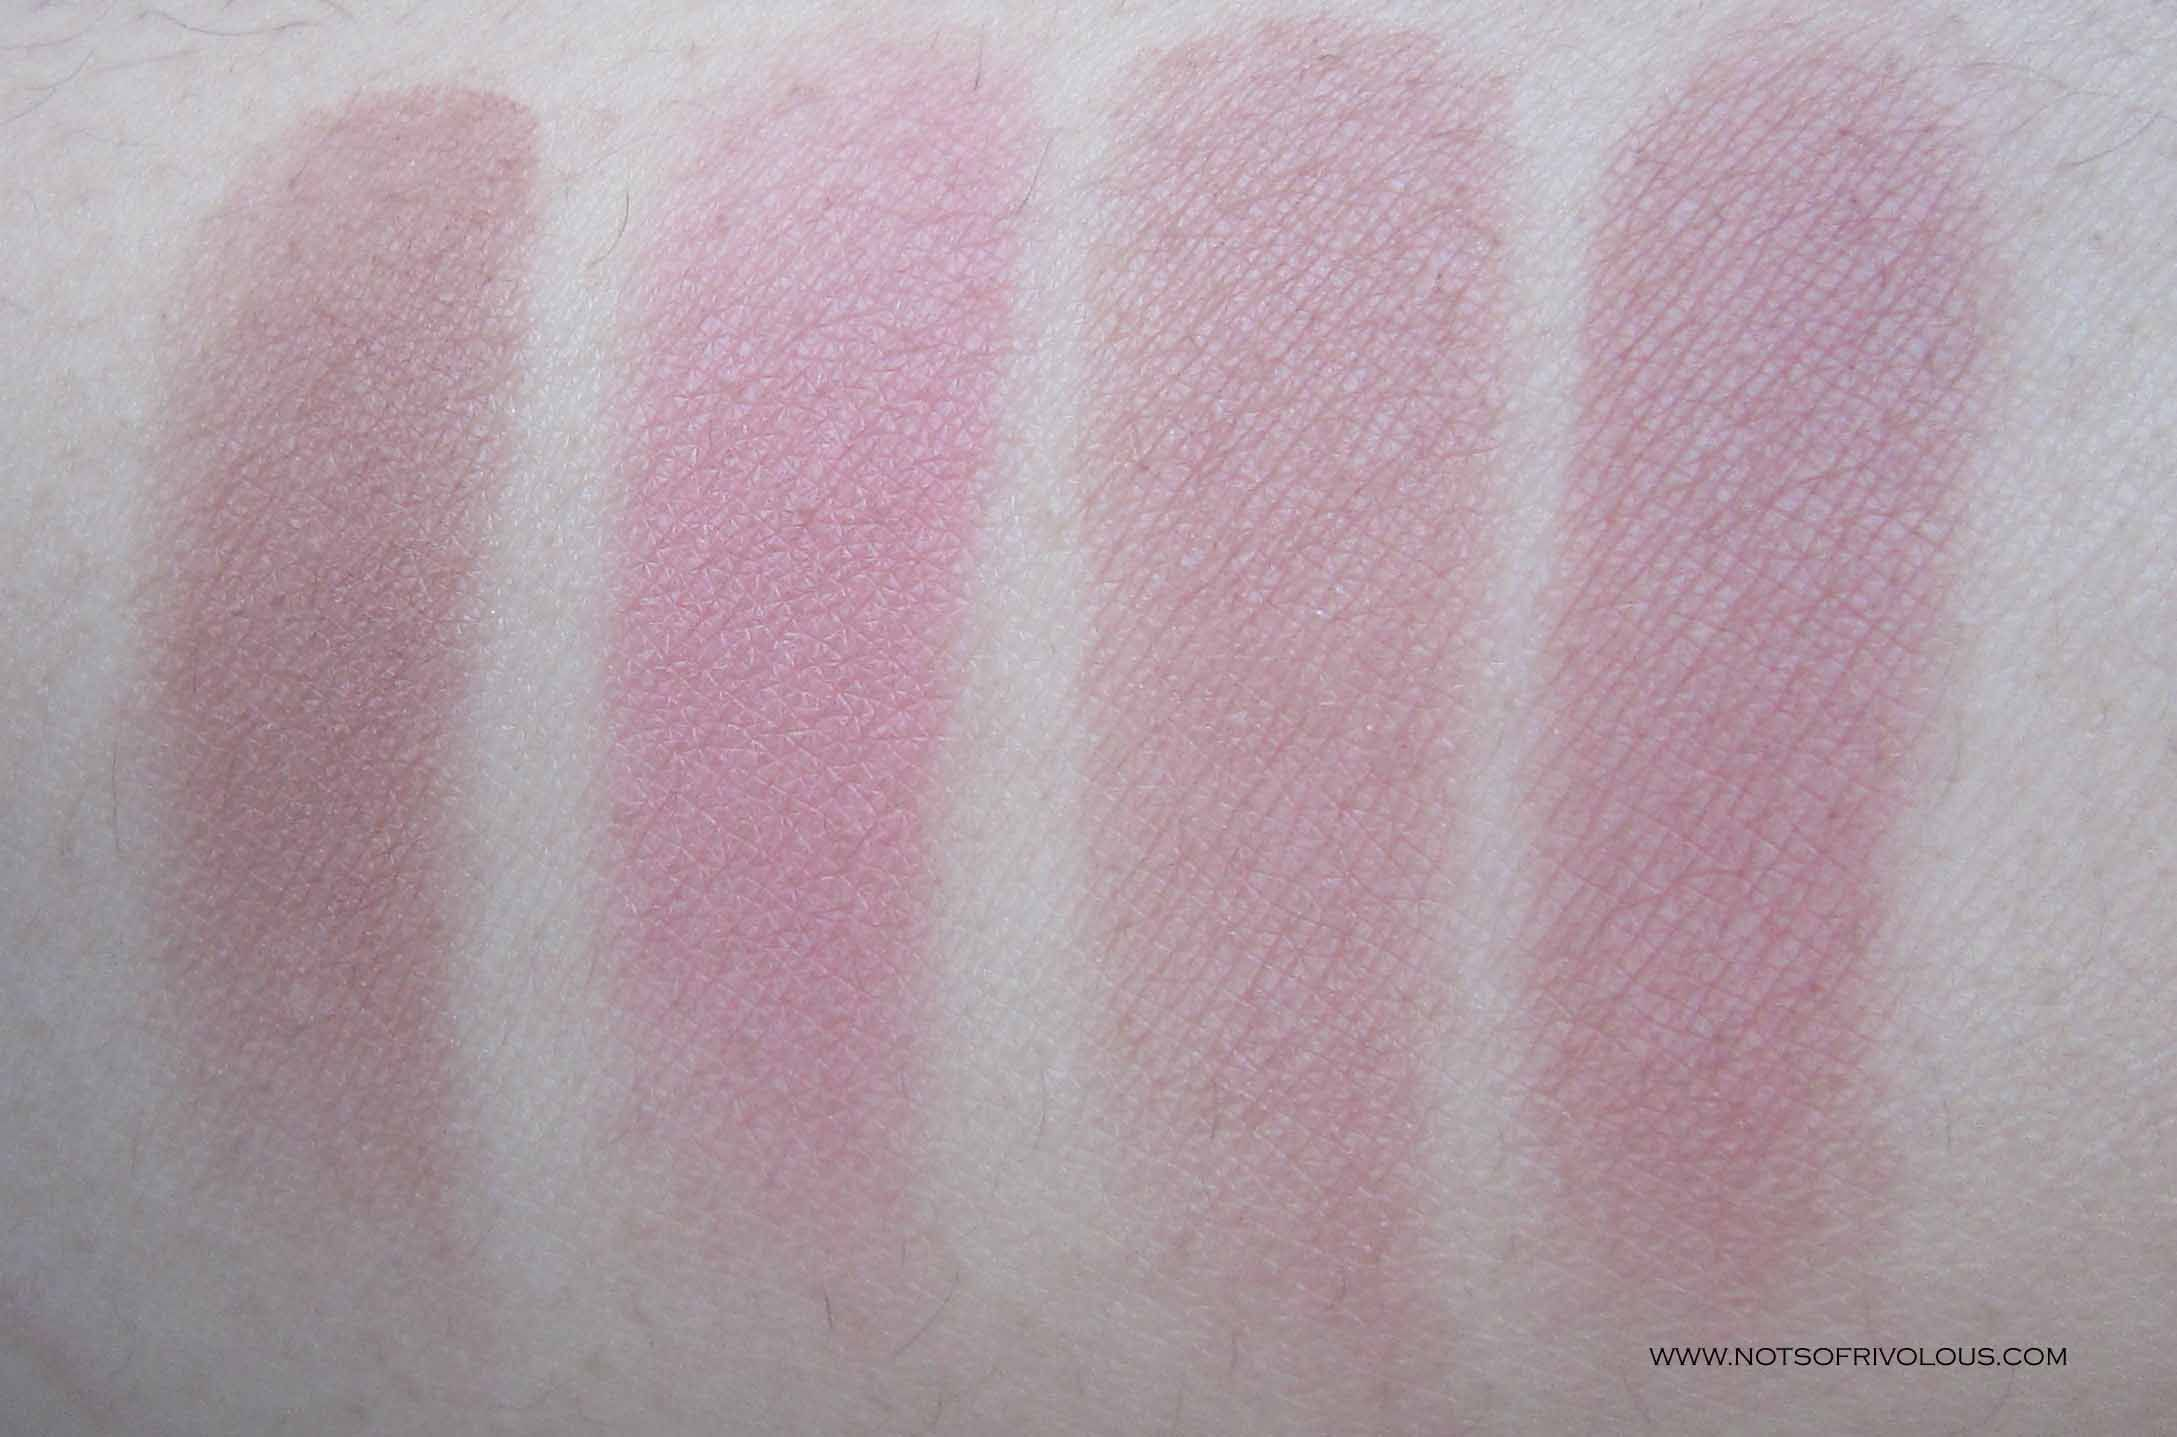 NARS Douceur, Love, Tarte Exposed & MAC Blushbaby Swatches | NARS ...